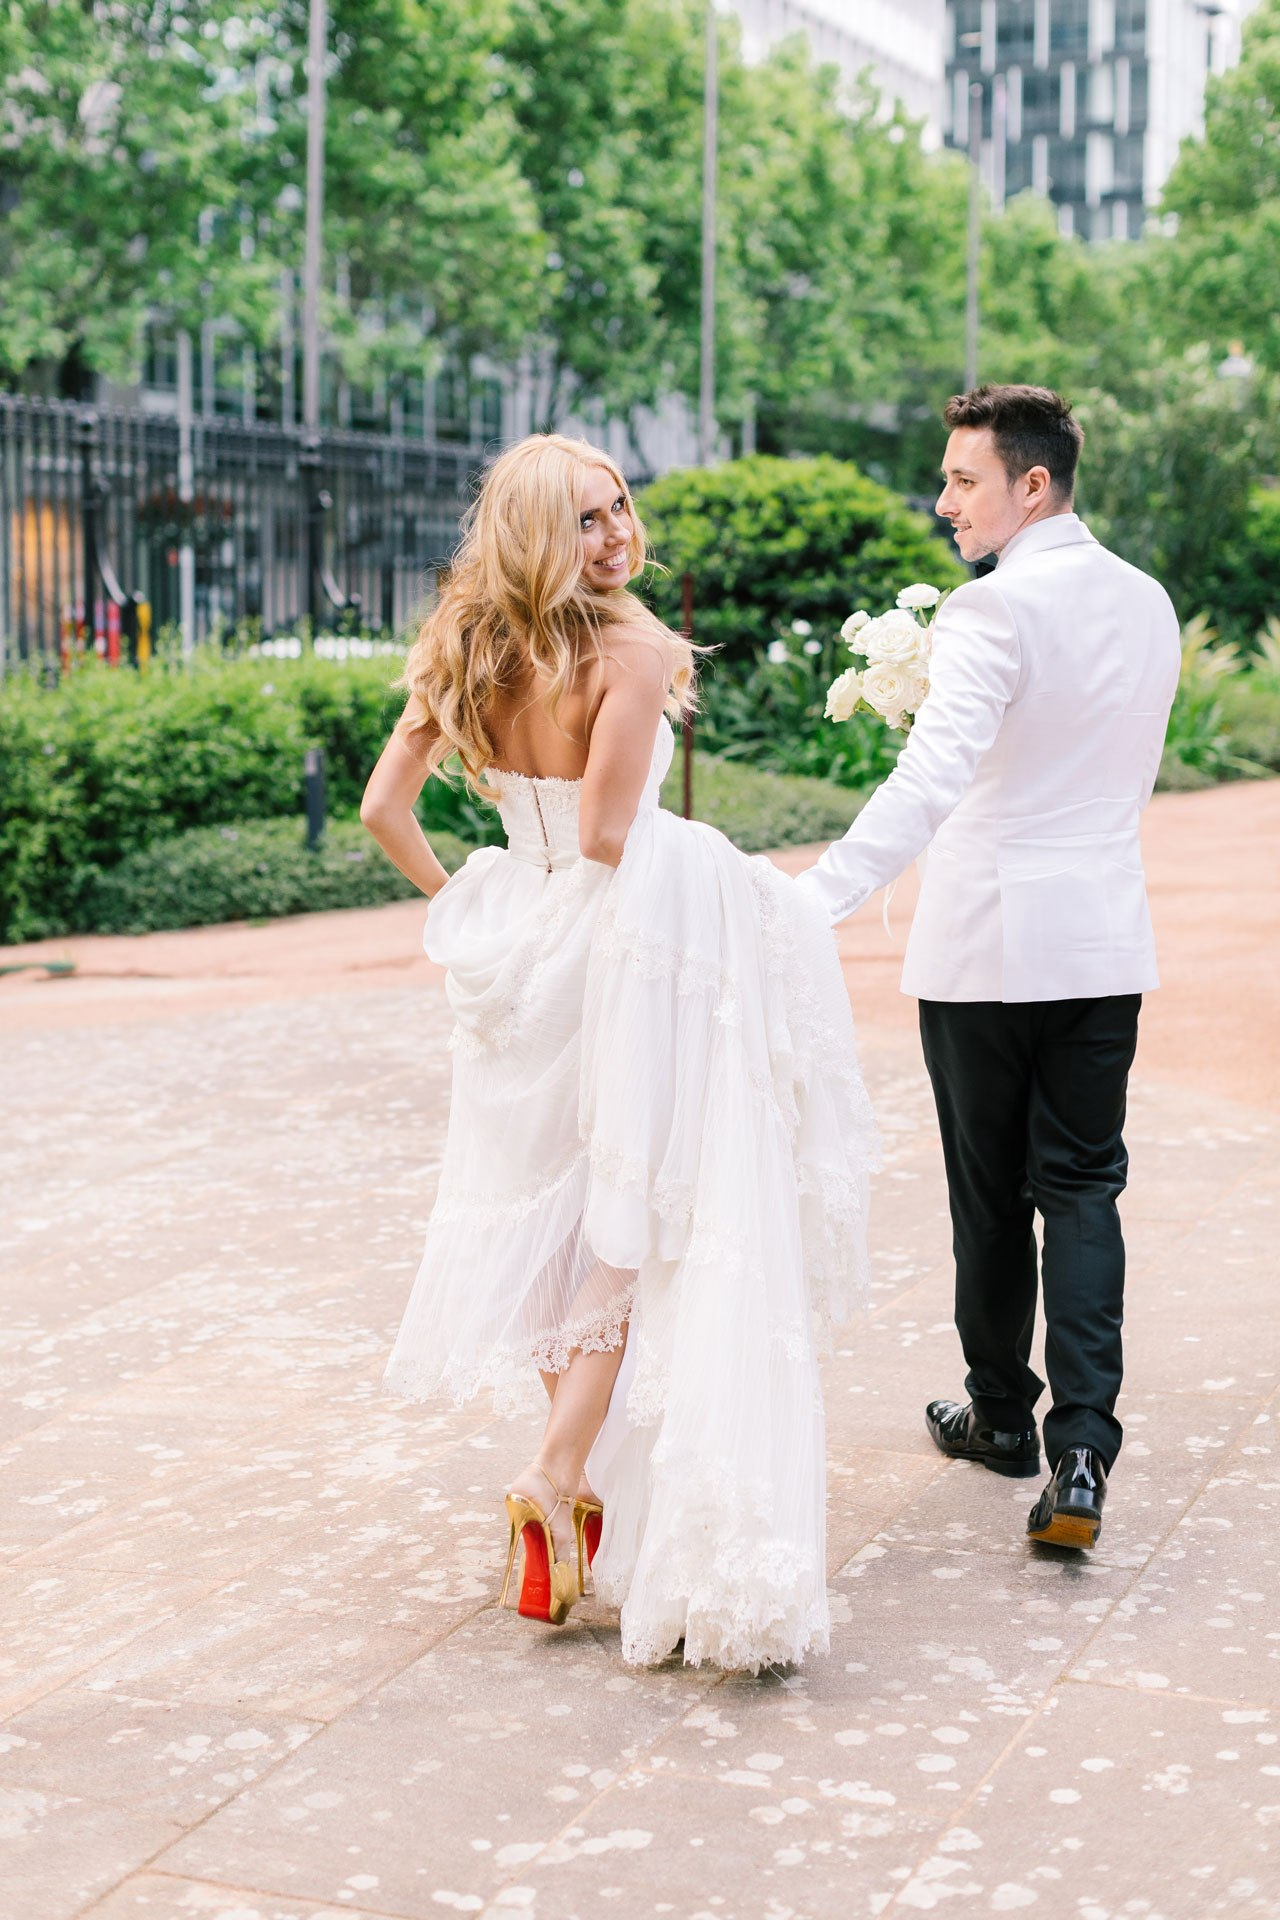 Inside a festive, love-filled wedding in the heart of Sydney